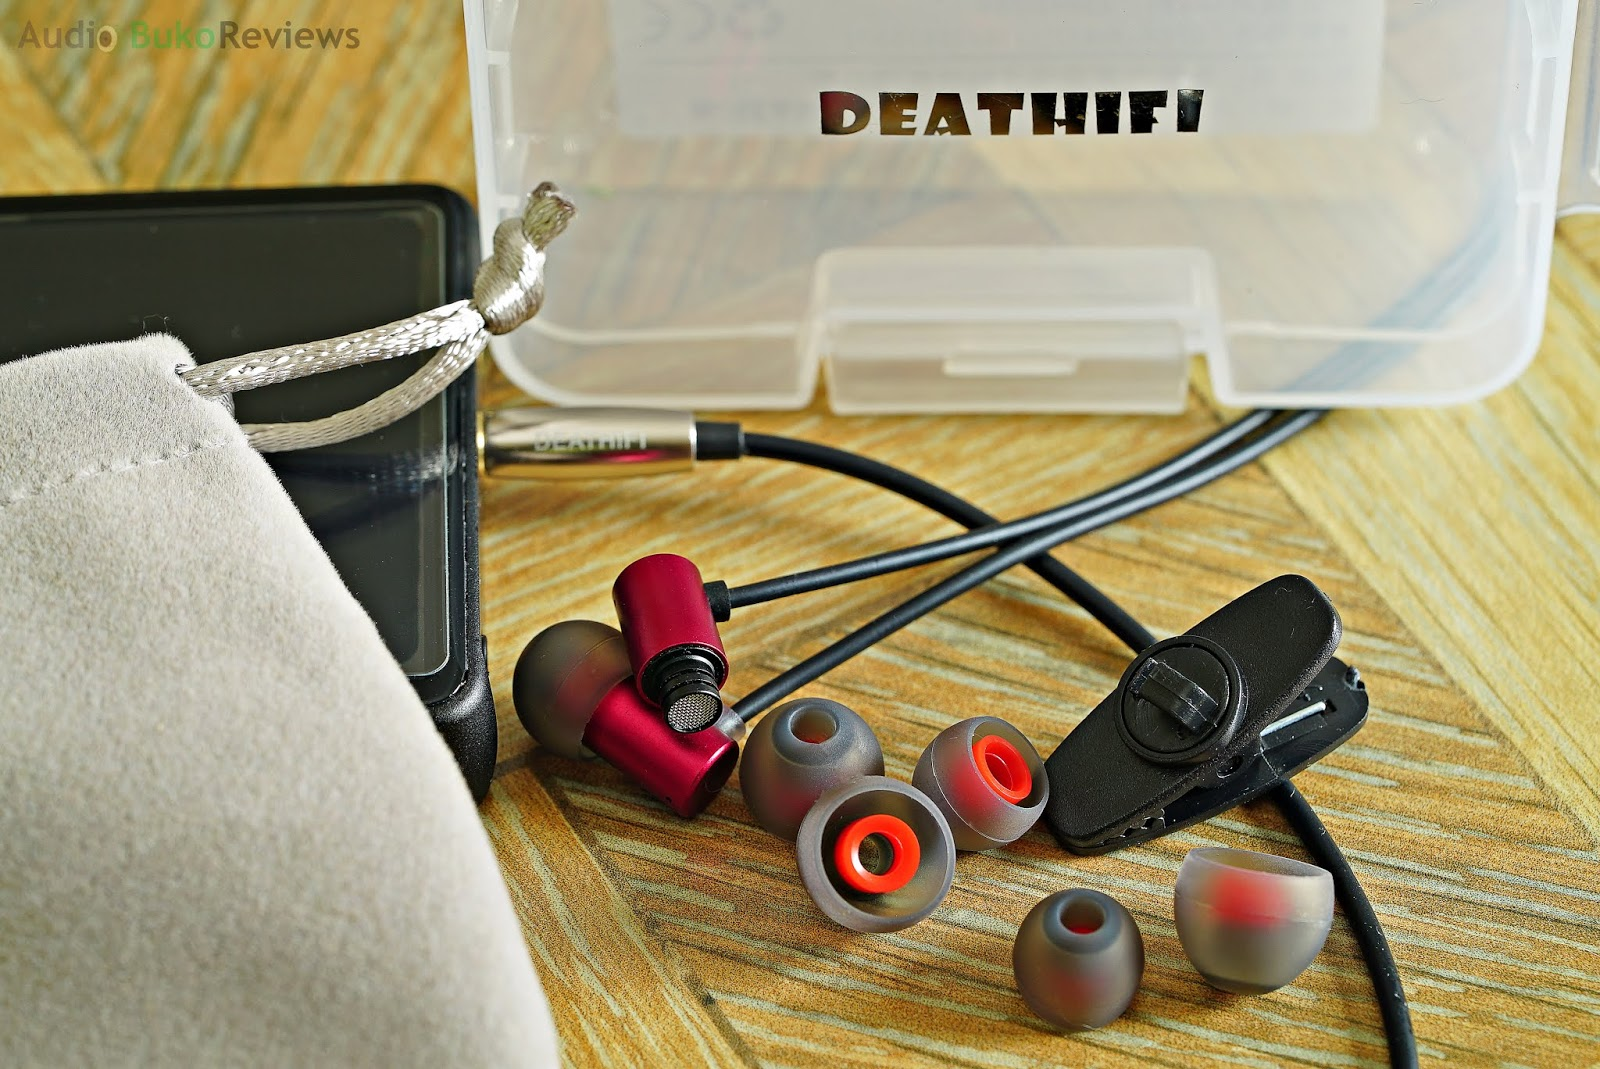 DEAT HIFI Small | Reviews | Headphone Reviews and Discussion - Head